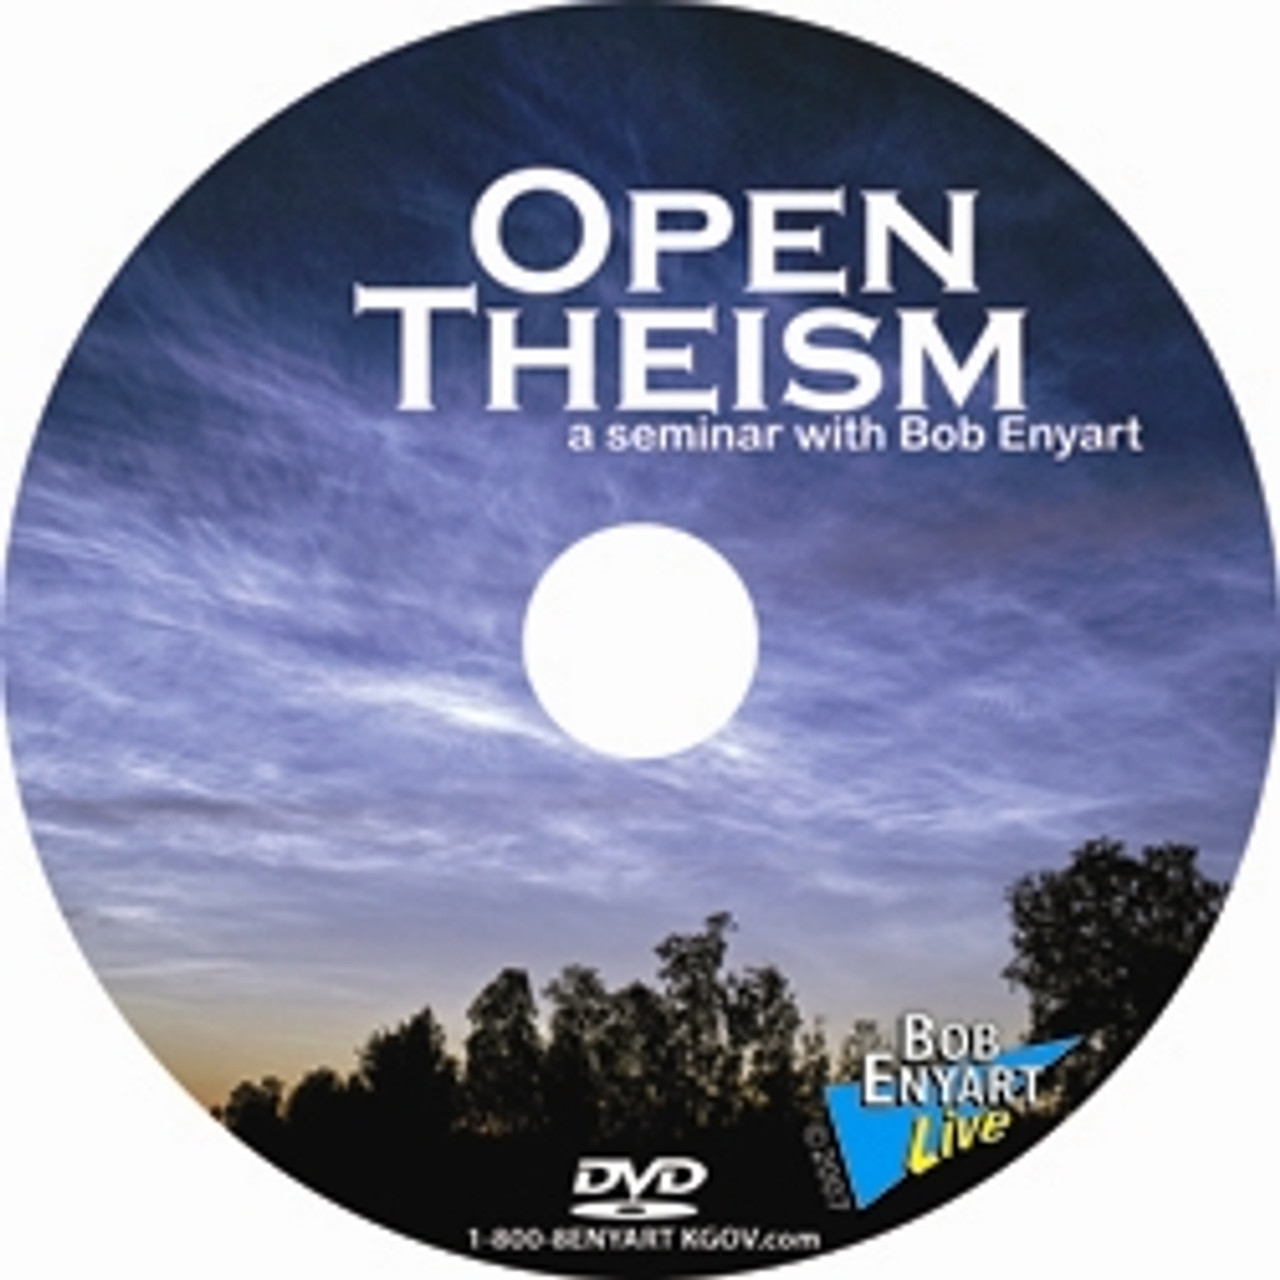 Check out Bob's fascinating seminar on Open Theism!